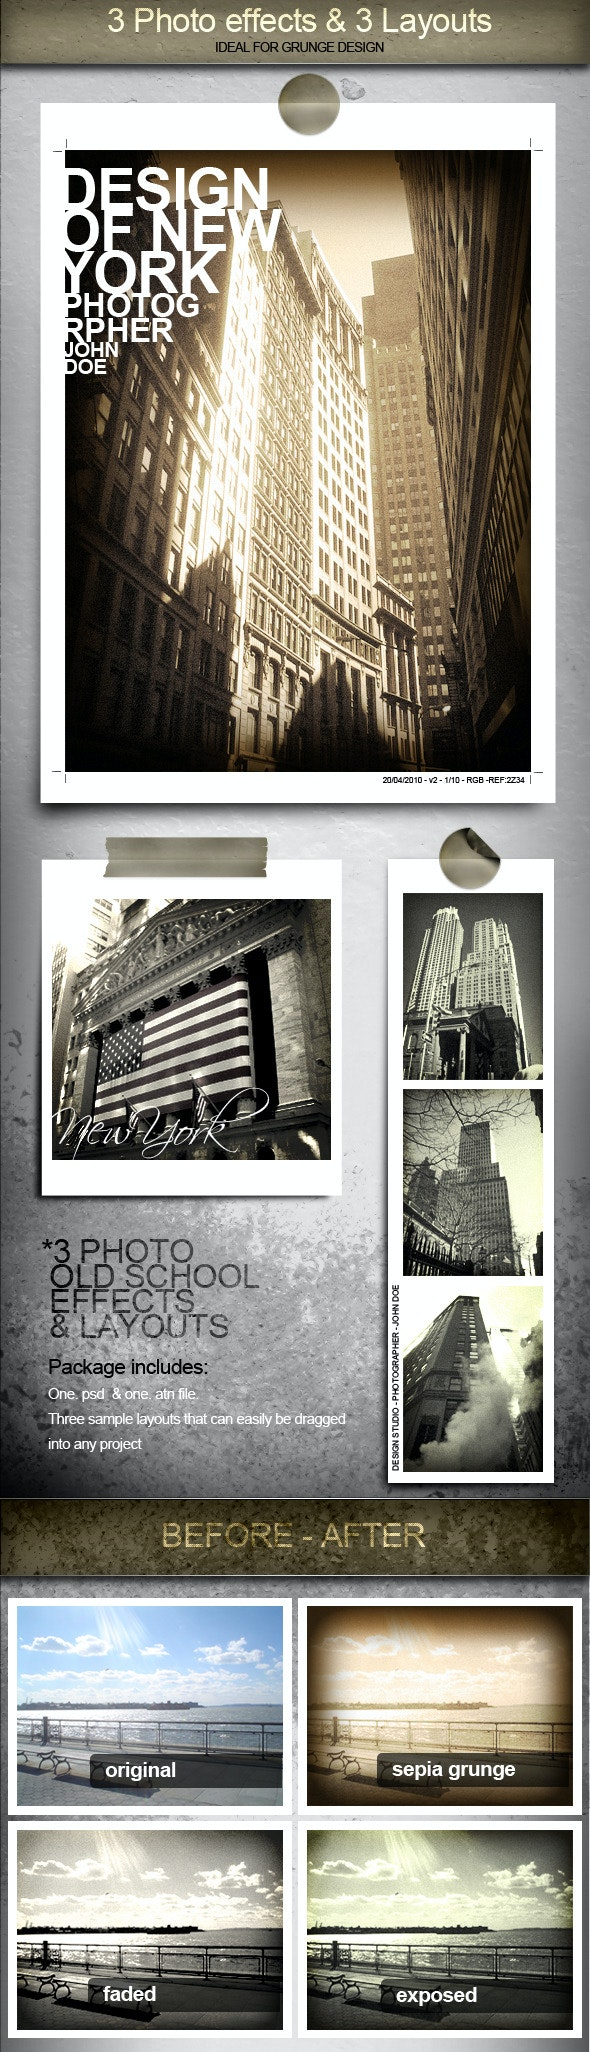 3 Cool Photo Effects and Layouts - Photoshop Add-ons